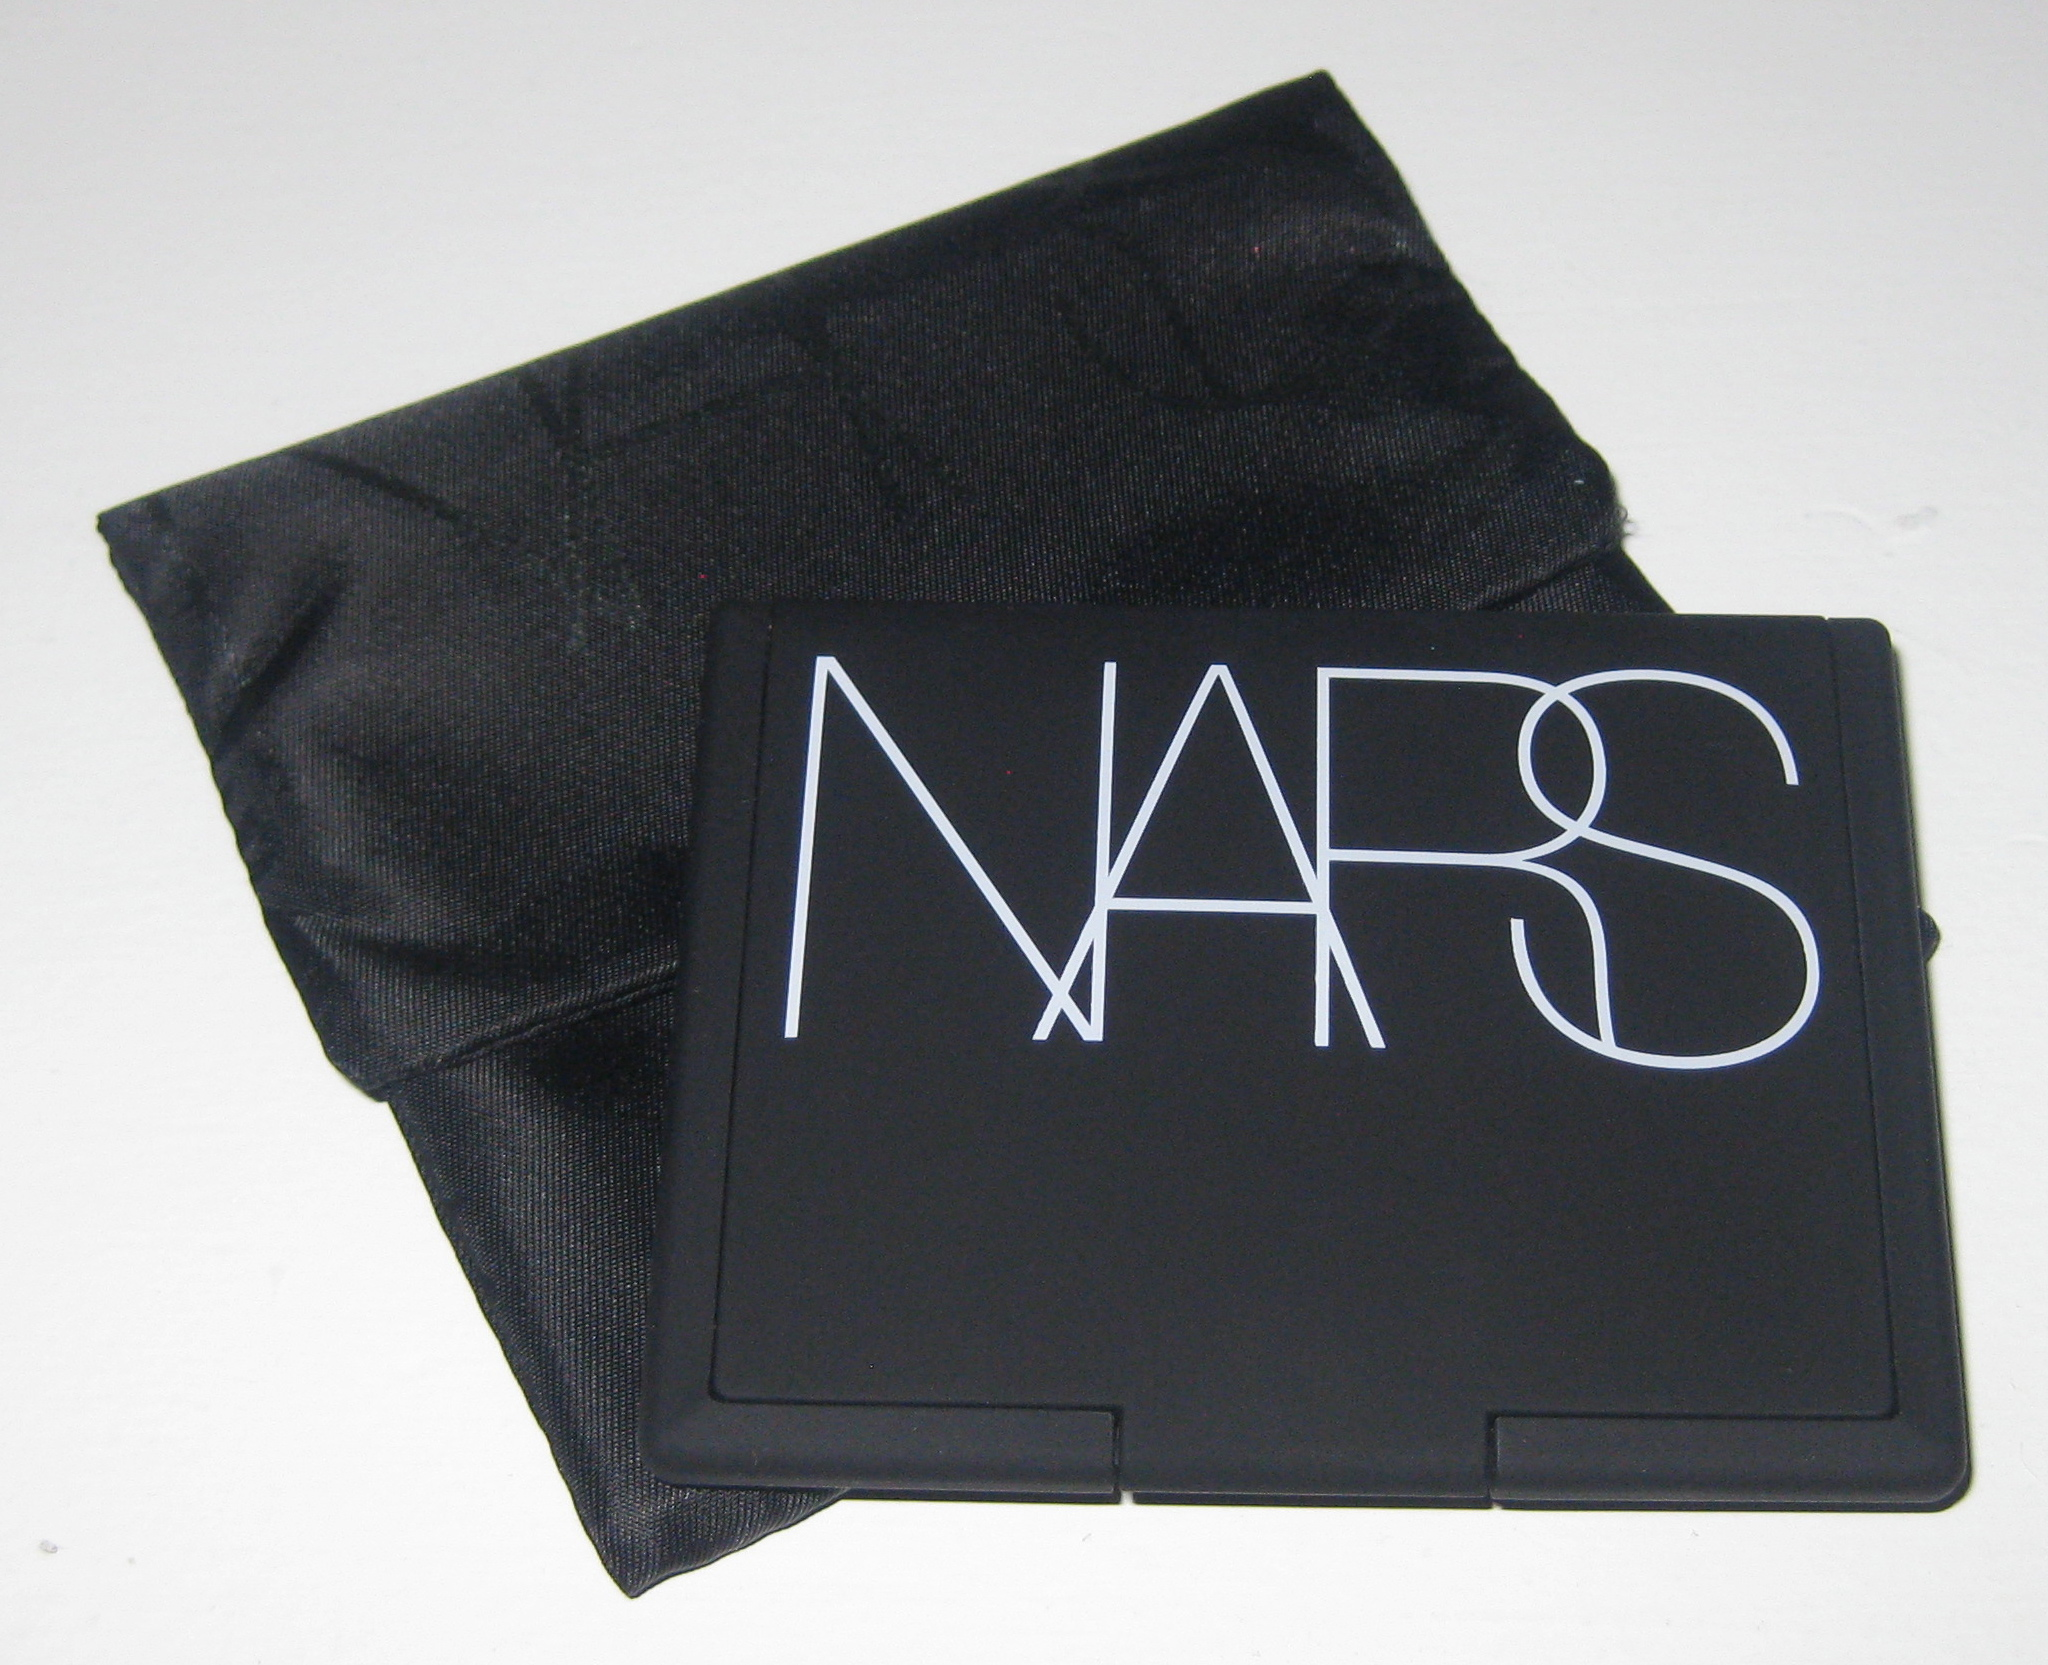 nars light reflecting pressed setting powder review and comparisons. Black Bedroom Furniture Sets. Home Design Ideas